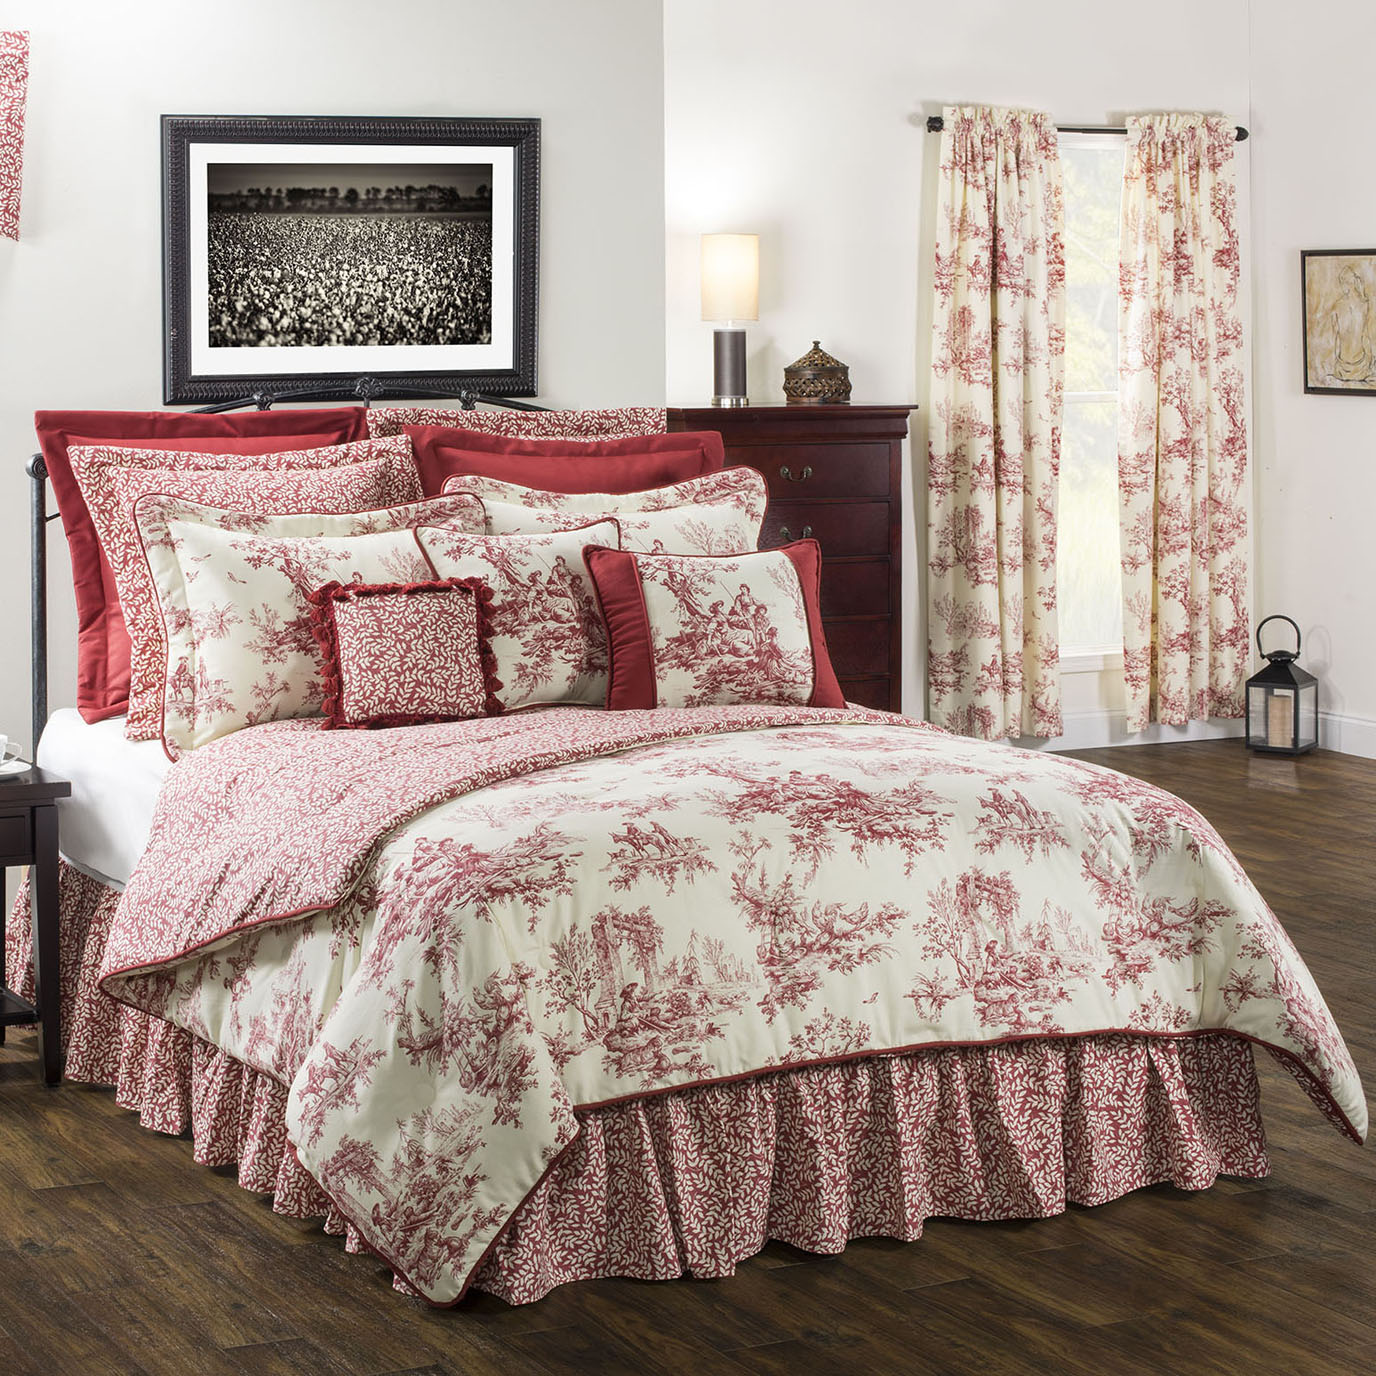 "Bouvier Red California King Comforter Set(15"" drop bed skirt)"